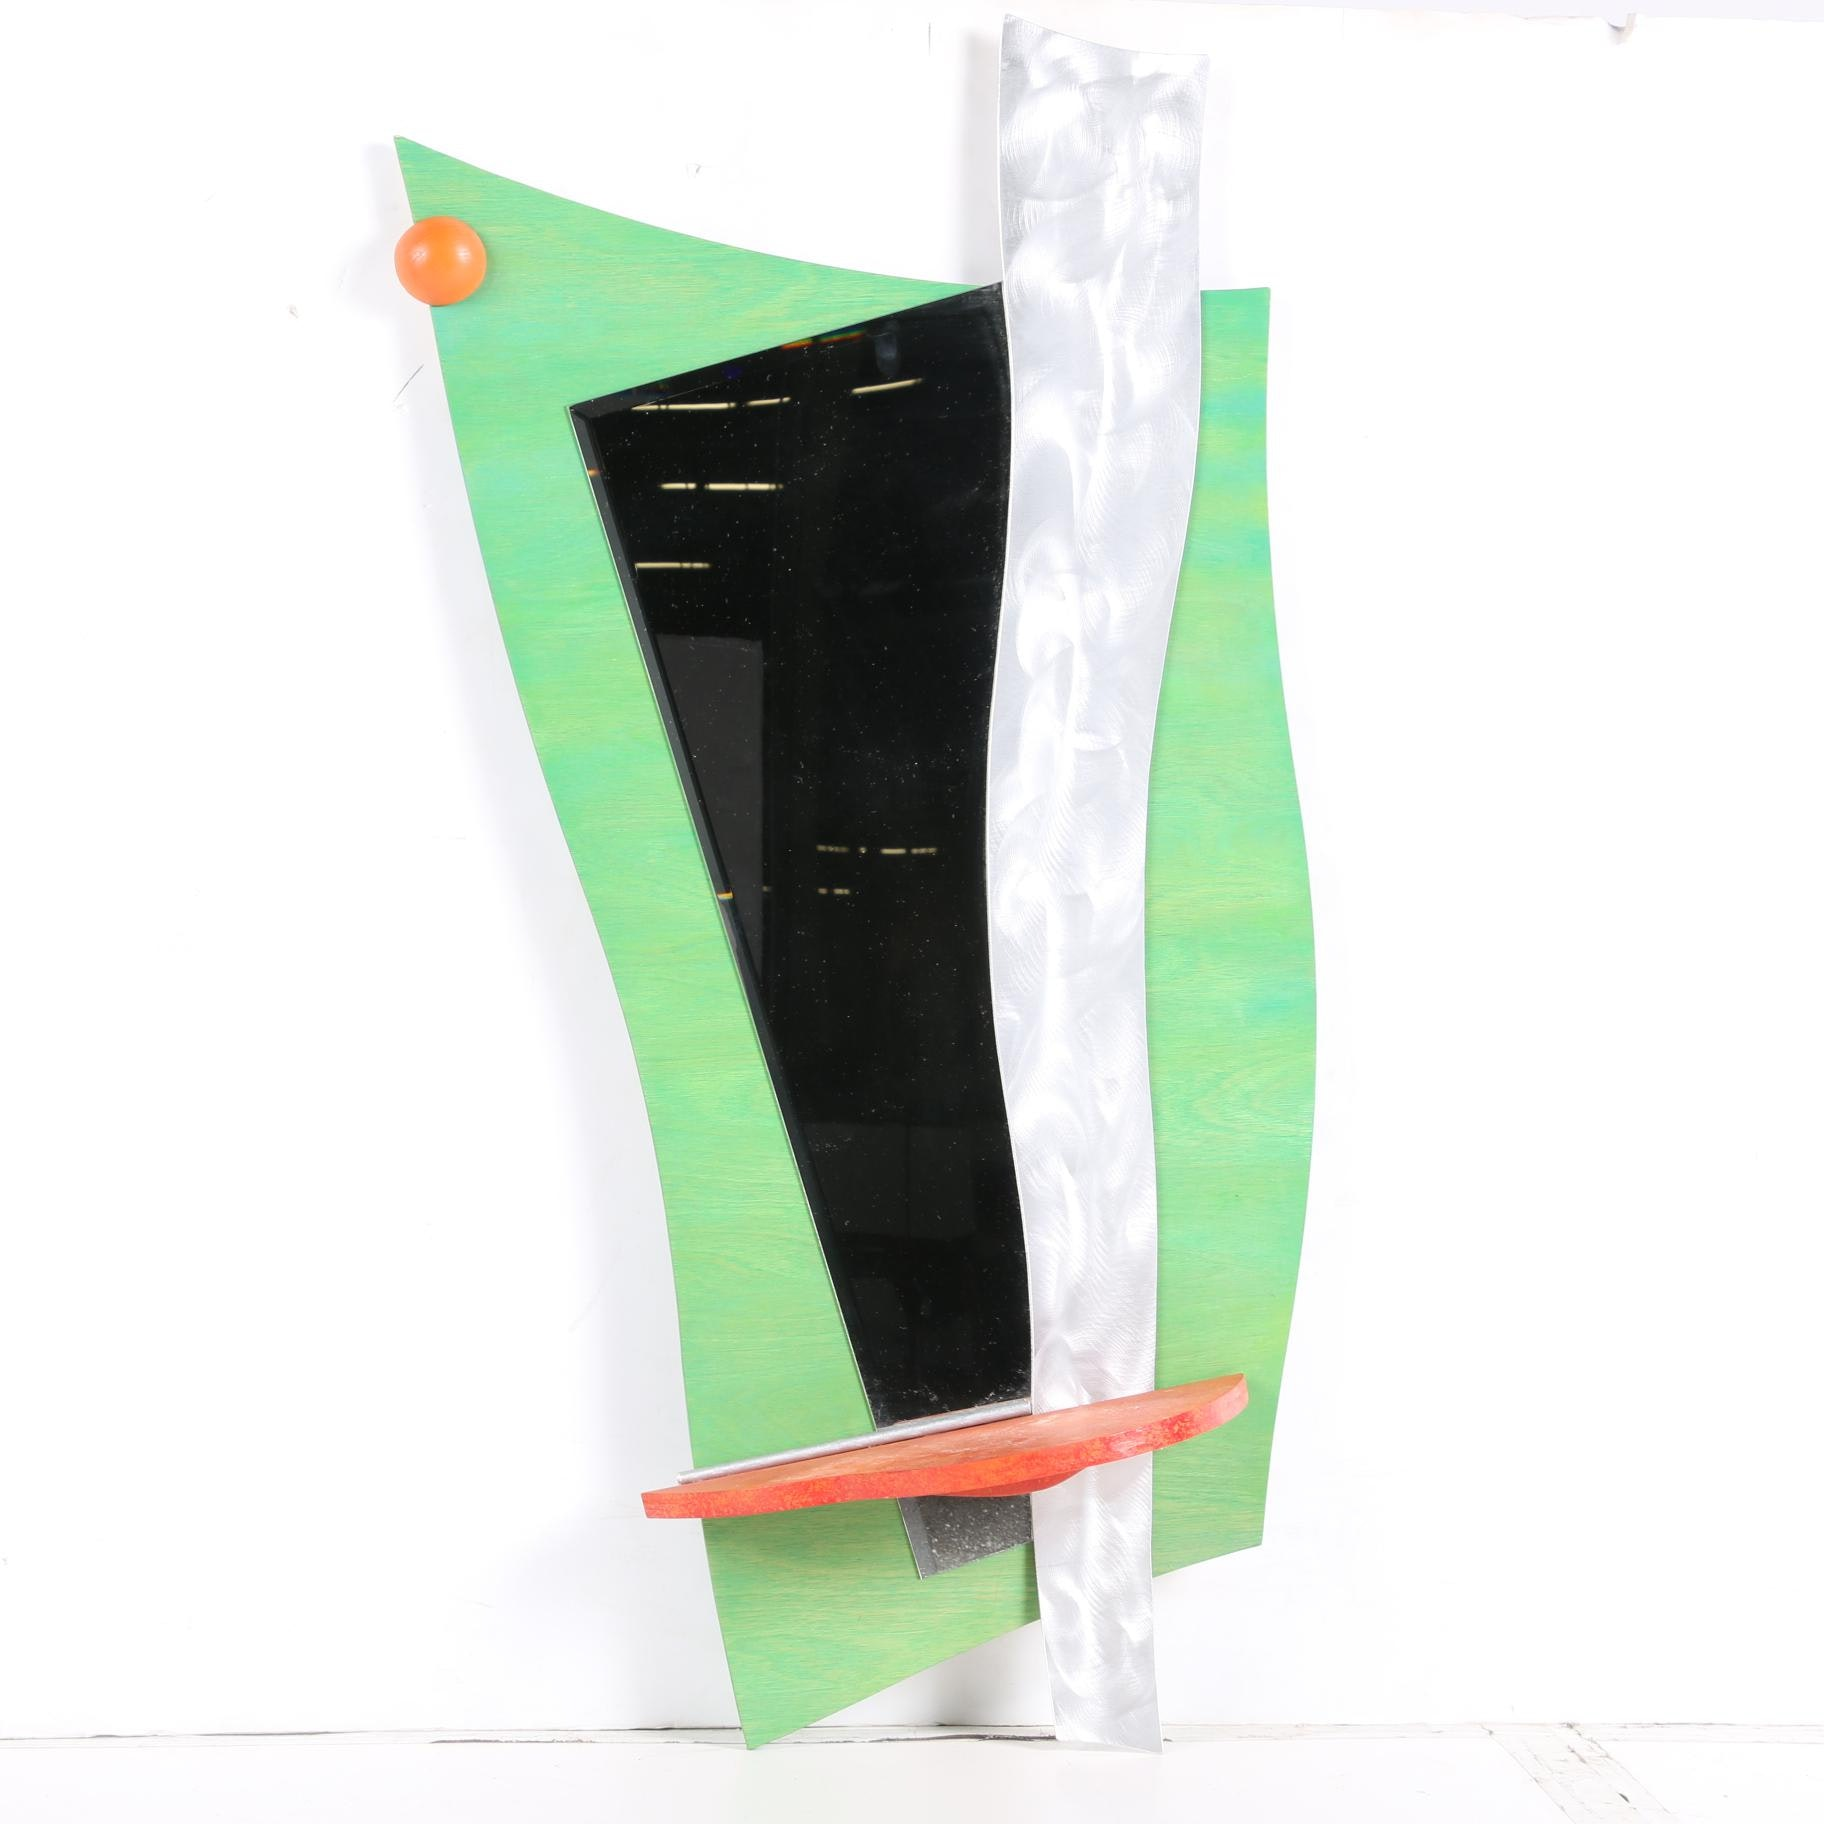 1980s Deco Revival Style Abstract Wall Hanging Mirror